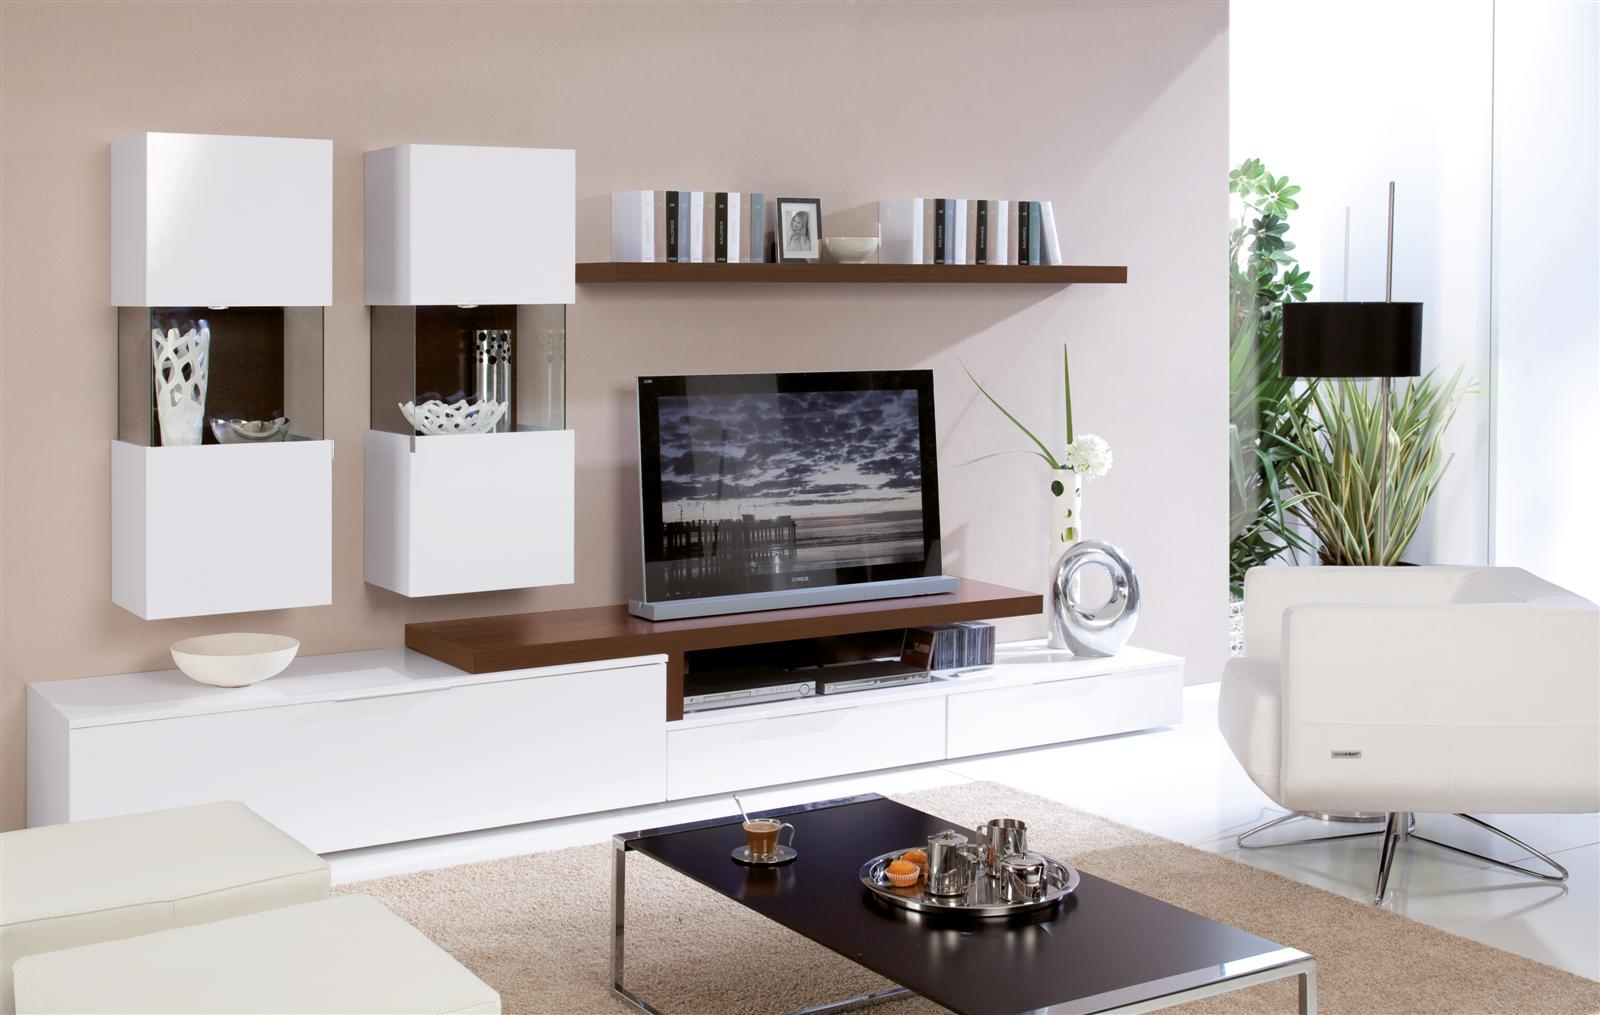 Wall Designs For Tv Room : Modern tv unit design ideas for bedroom living room